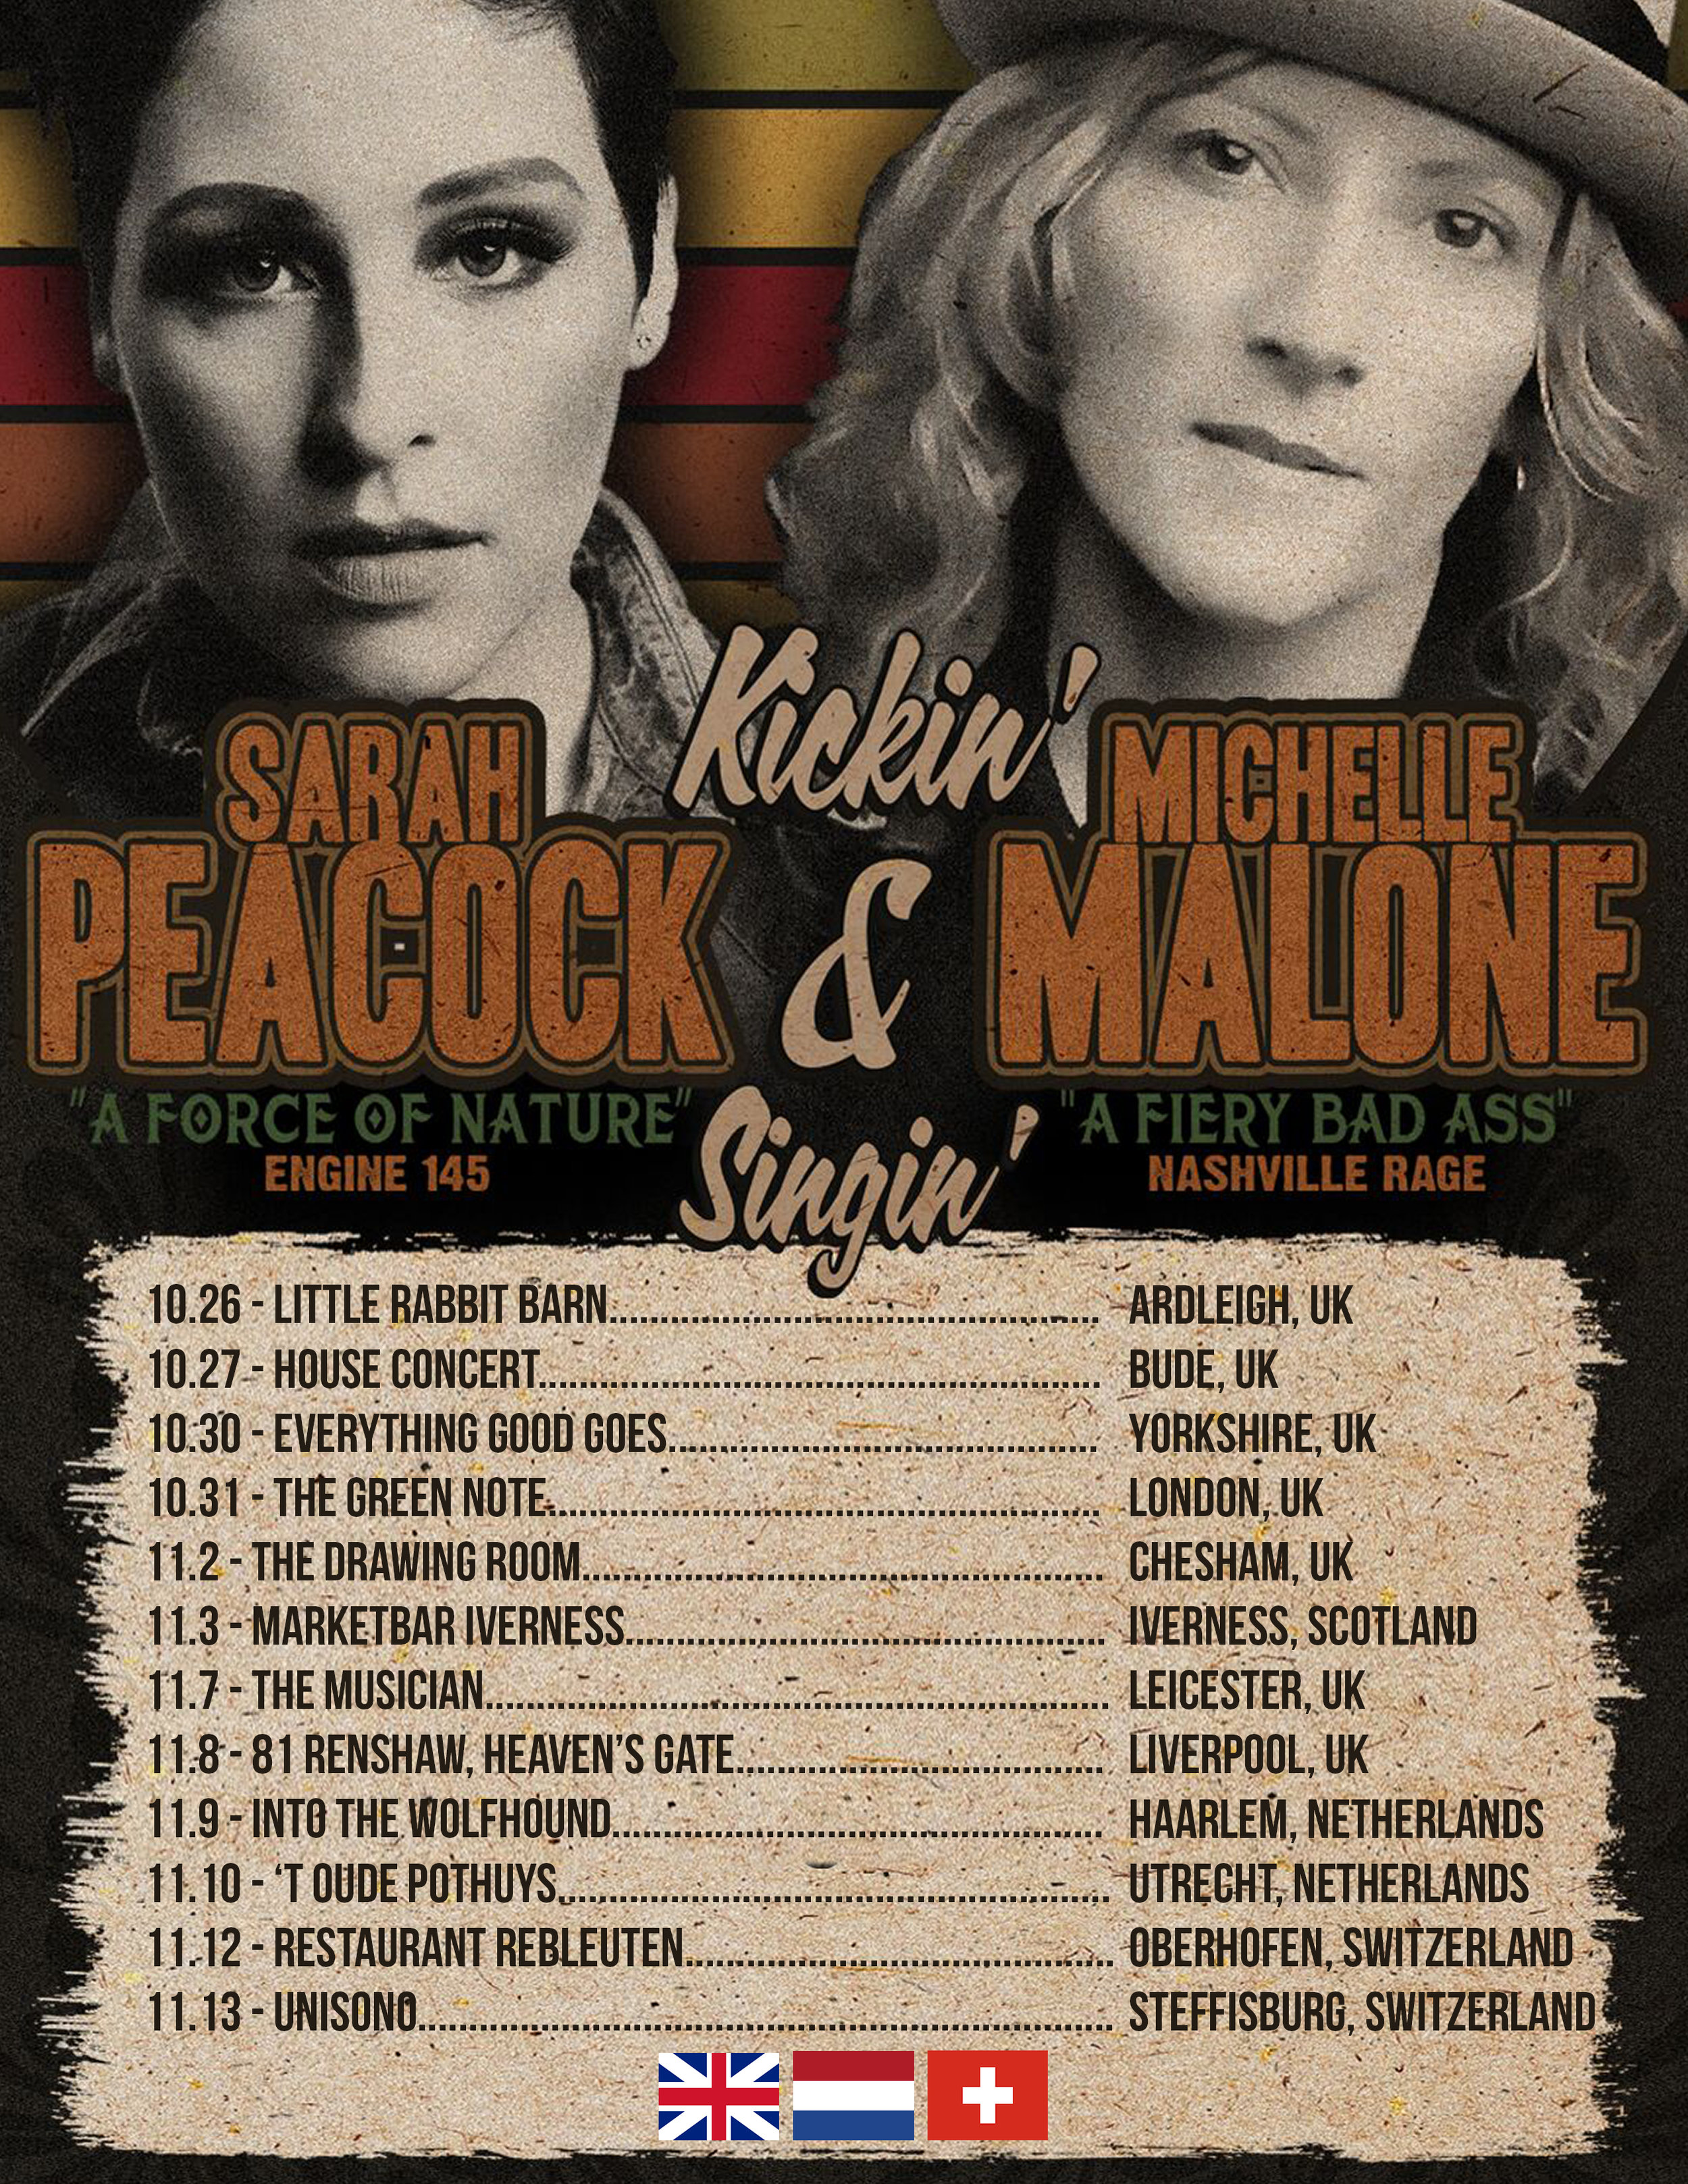 Sarah Peacock and Michelle Malone